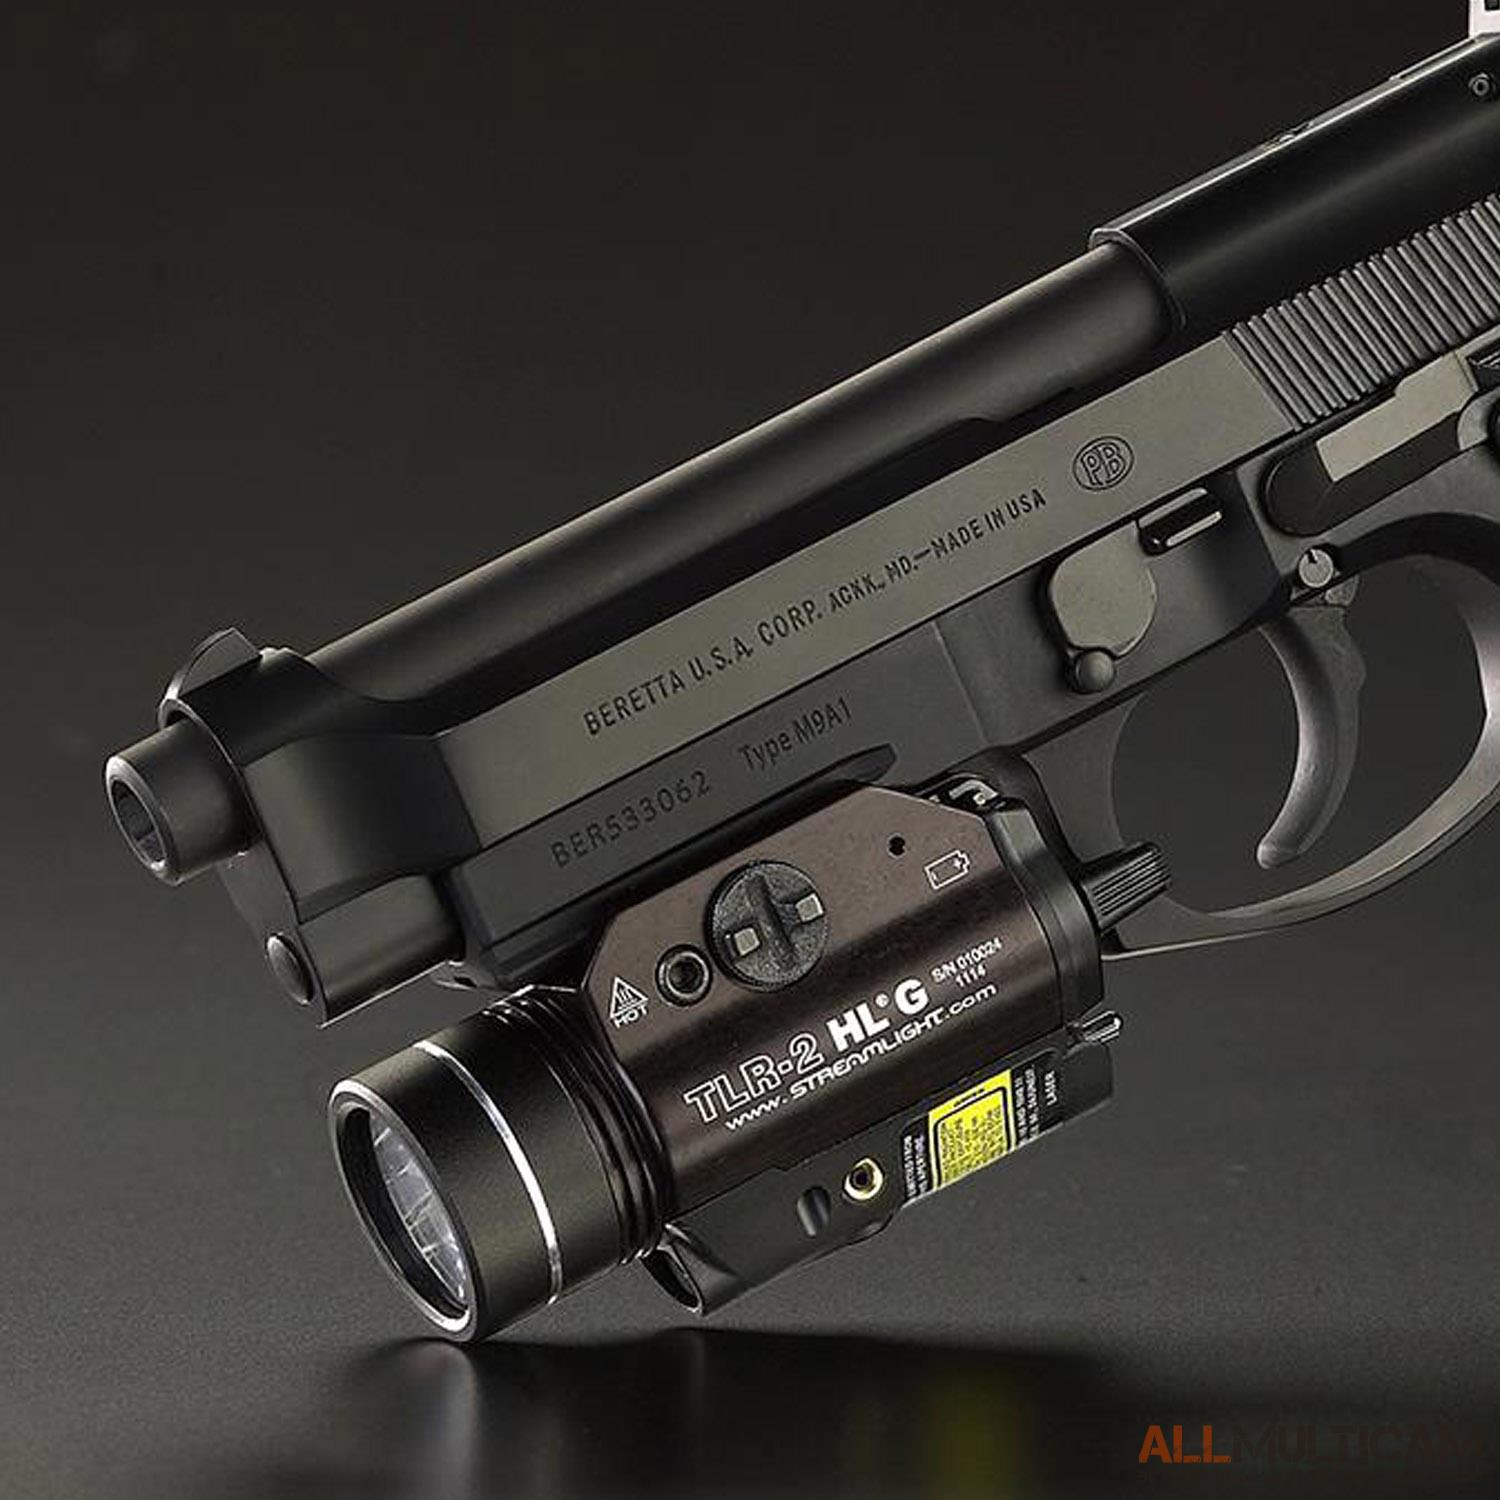 Фонарь TLR-2 HL G StreamLight